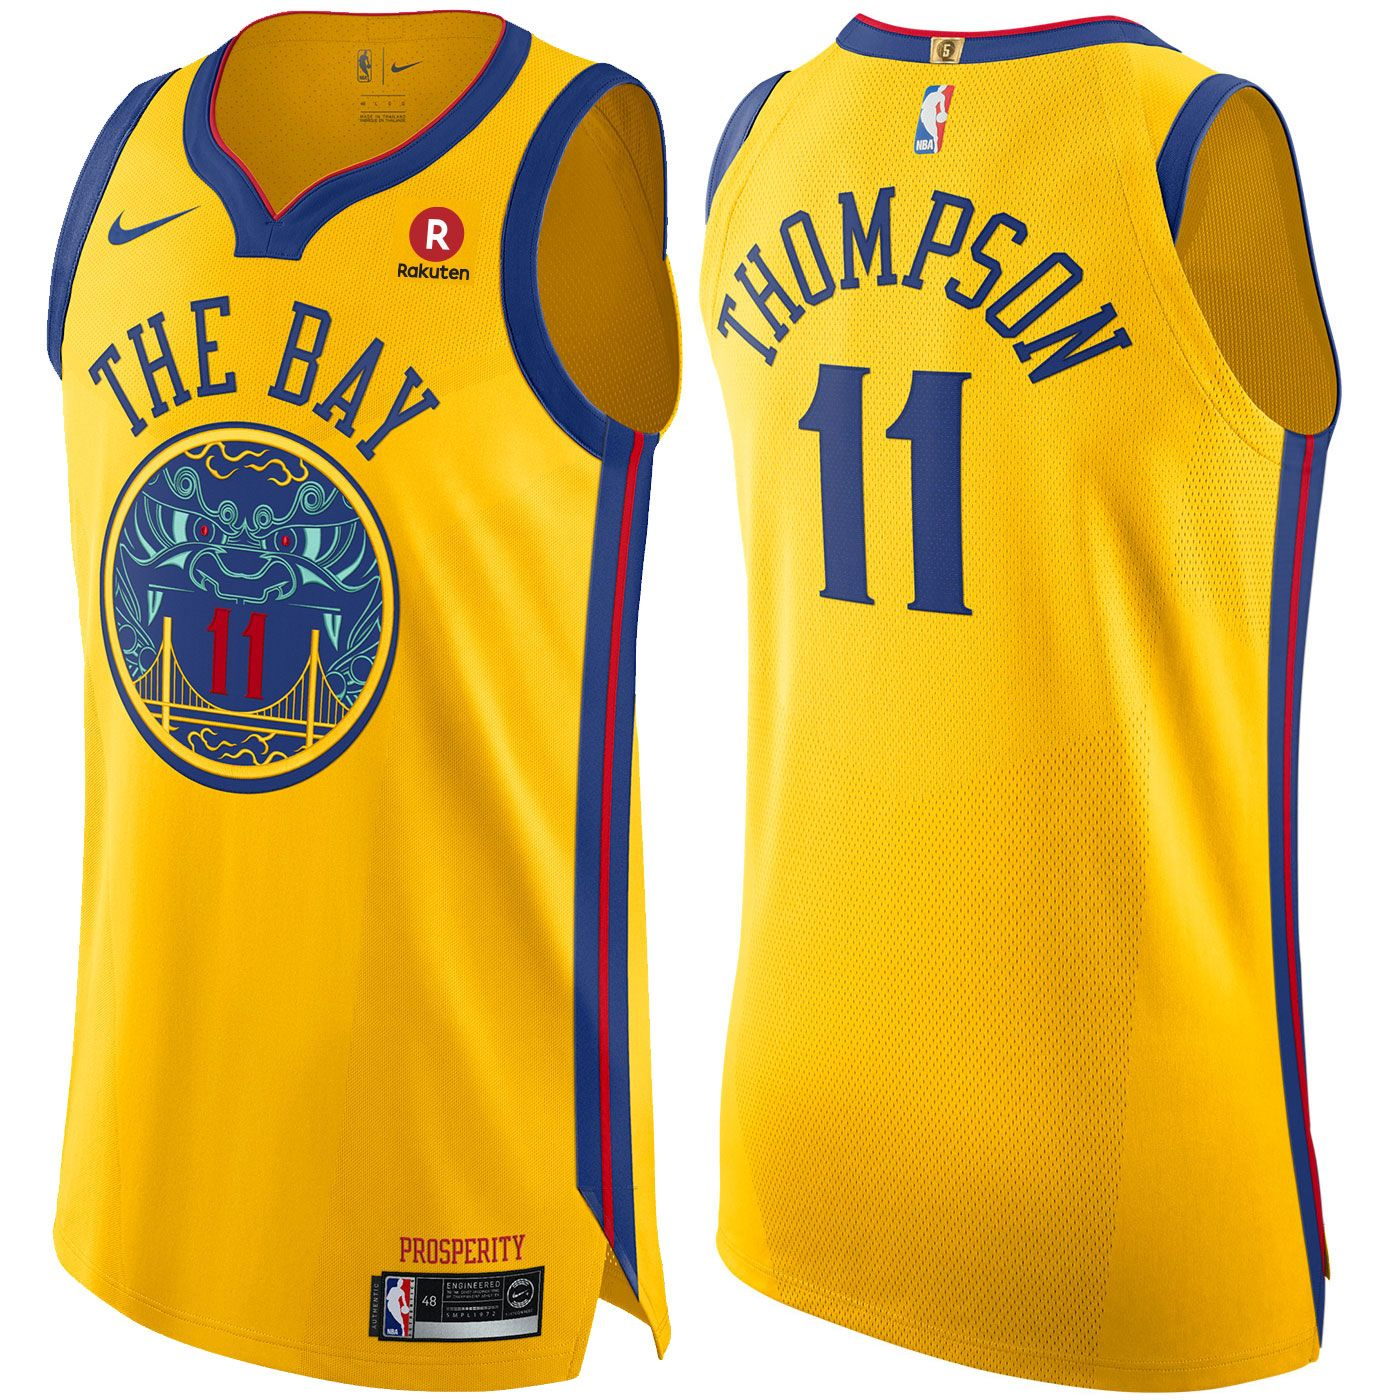 b4ccf8bc179 Golden State Warriors Nike Men s Chinese Heritage Klay Thompson  11  Authentic On Court City Edition Jersey - Gold